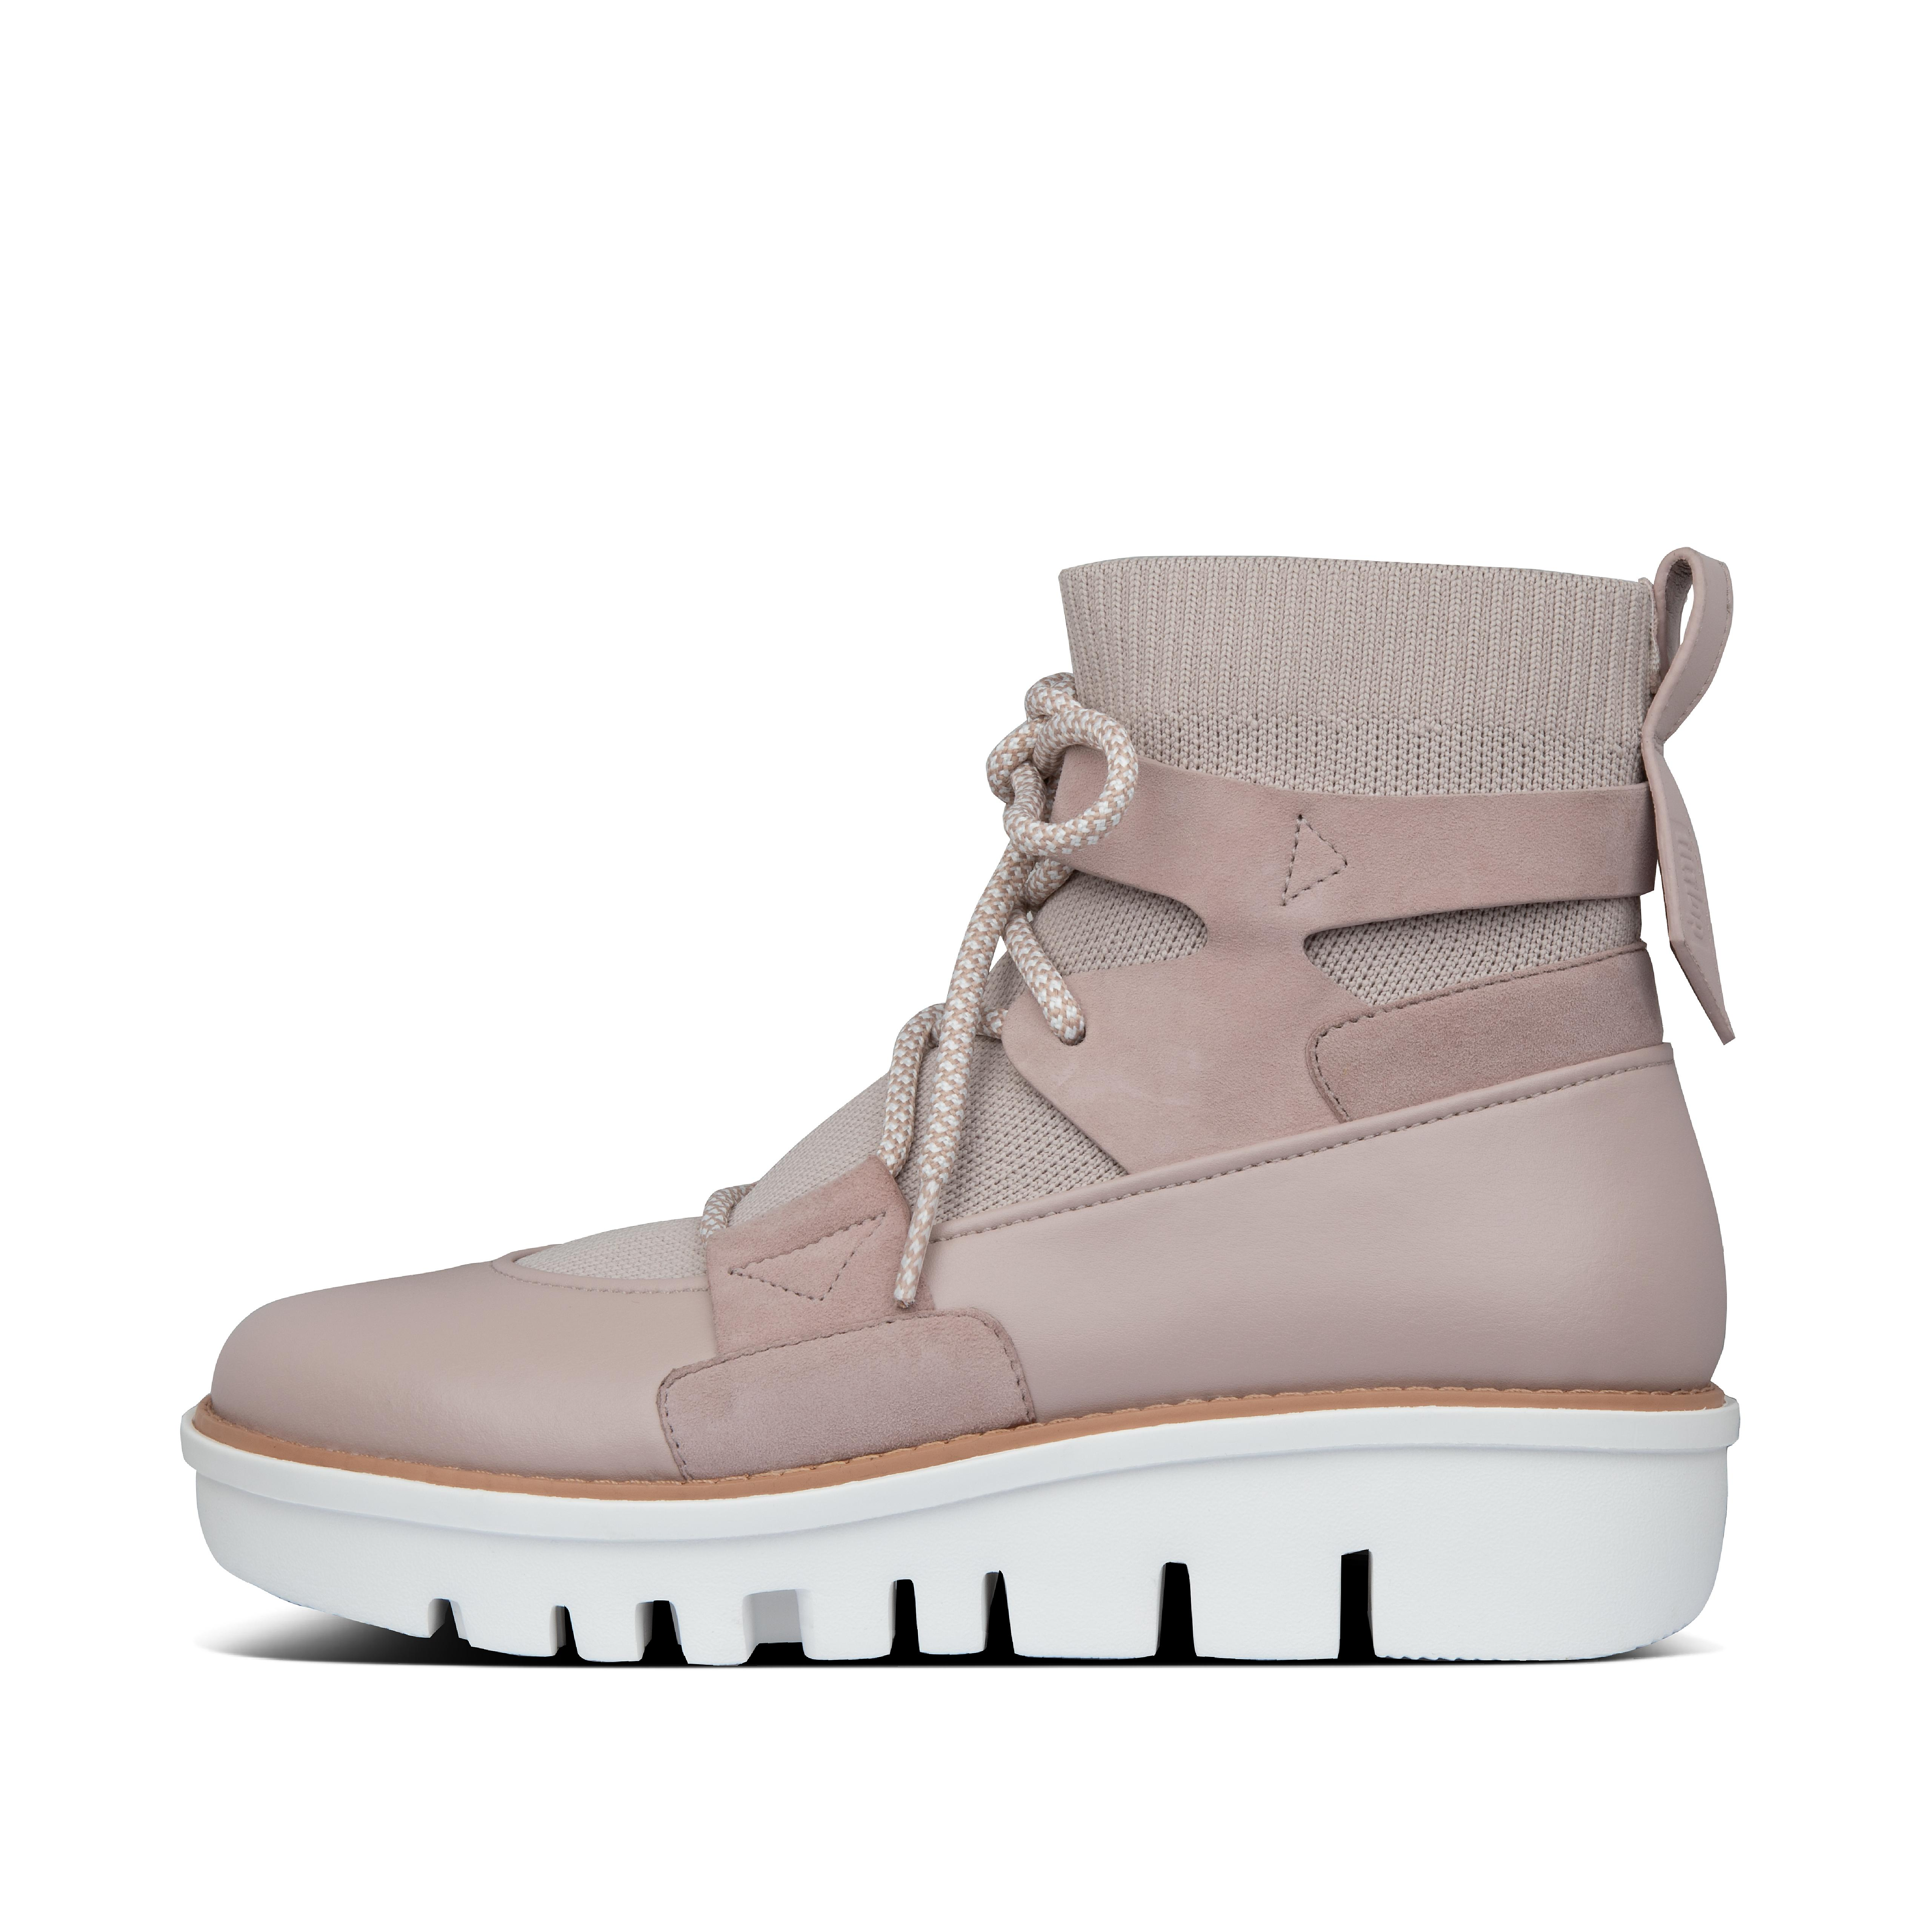 Our high-fashion take on the hiker trend. These Nordic-inspired boots sport directional details like two-tone ski-style laces, mixed-material detailing (smooth faux-leather and suede) and chunky lug soles - but are practical too. This version is in a cozy, stretchy engineered knit. And those statement soles are grip-tested and feature our light, all-day cushioning Ergocom FF™ midsole tech. The peak of chic for a trek to the mall, park, coffee shop.